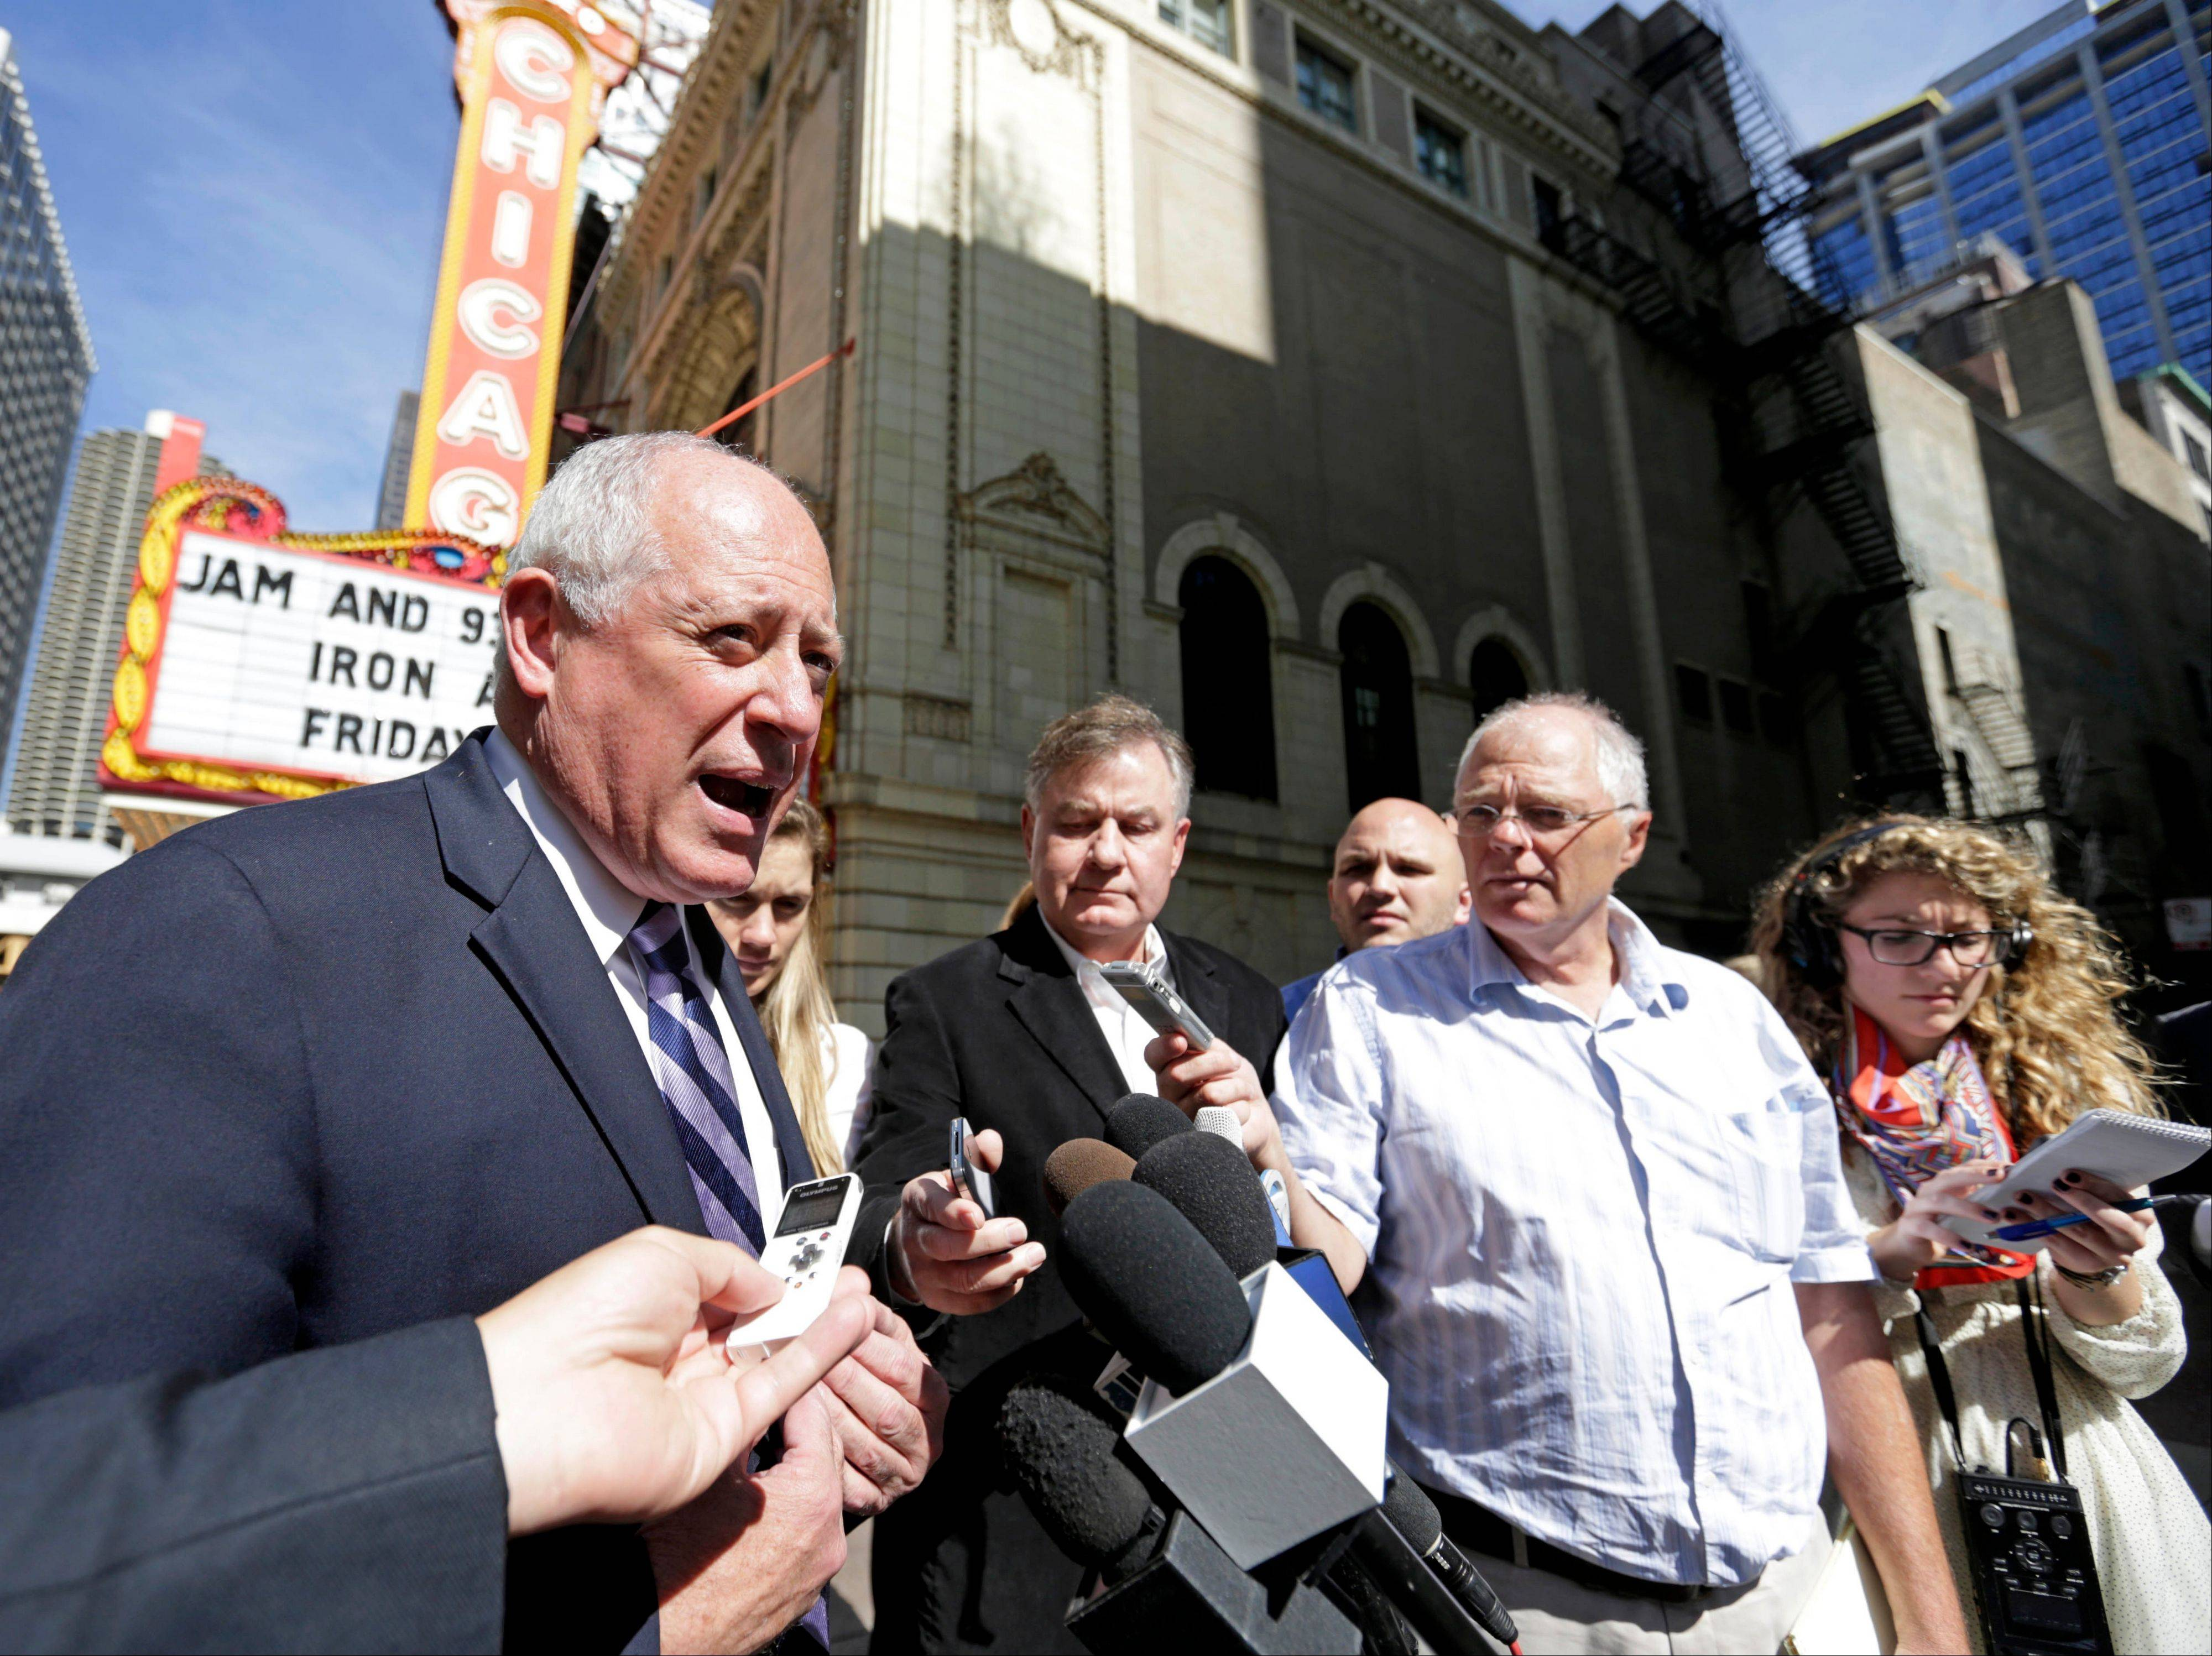 Gov. Pat Quinn speaks to reporters Fridayin Chicago after Cook County Judge Neil Cohen refused his request to stop legislators from being paid while he appeals Thursday's court ruling that his action was unconstitutional.